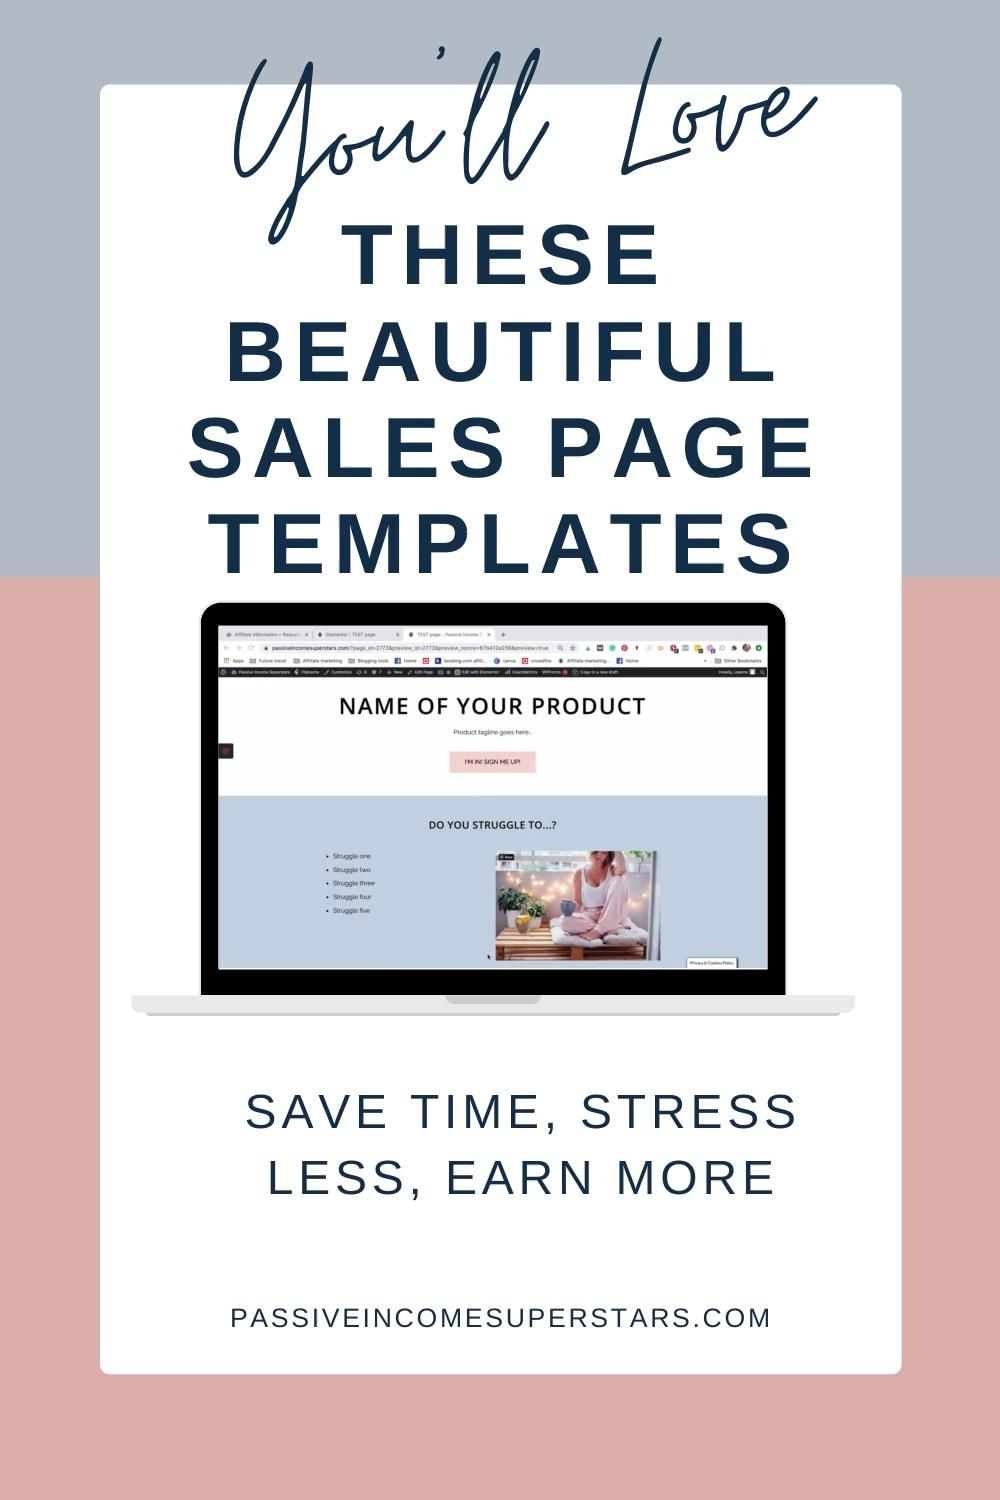 Get this bundle of beautiful Elementor sales page templates to create an irresistable sales funnel! Includes a lead magnet opt-in page, tripwire page template, webinar sign up page, sales page template, affiliate sign up page plus bonus sales funnel templates, product mockup templates and product pin templates! Sales funnel templates | Sales page template | Sales funnel page templates | Sell Digital porducts | Elementor #elementor #salespage #salesfunnel #funnels #digitalproducts #design